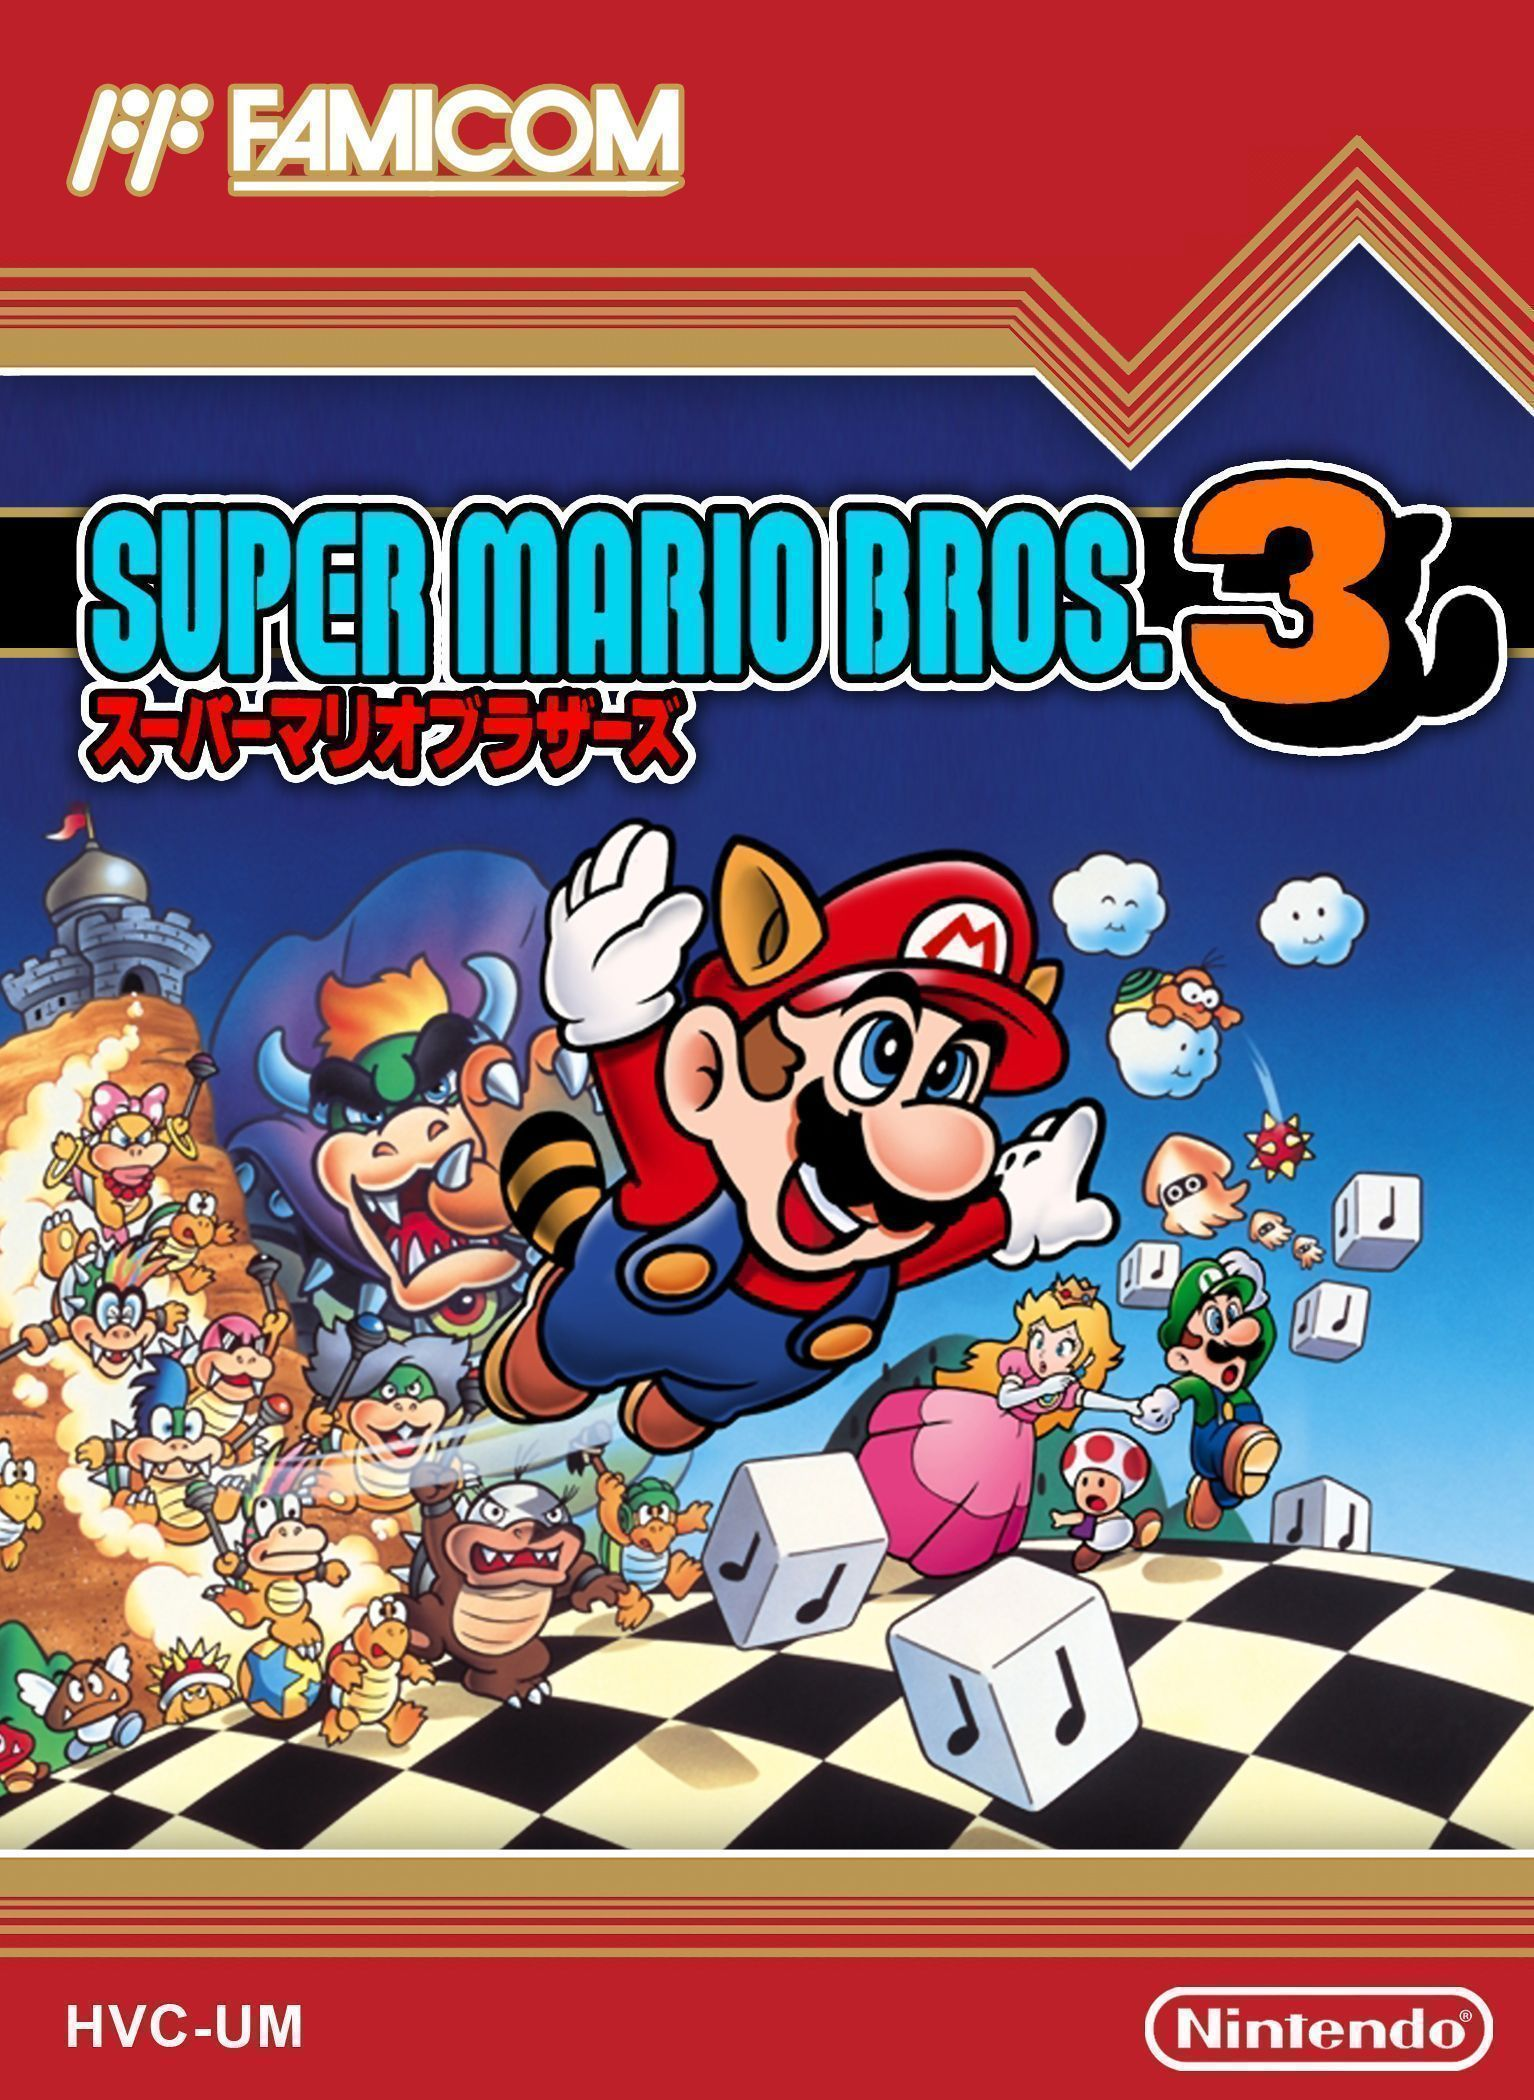 Super Mario Bros 3 - Nintendo(NES) ROM Download